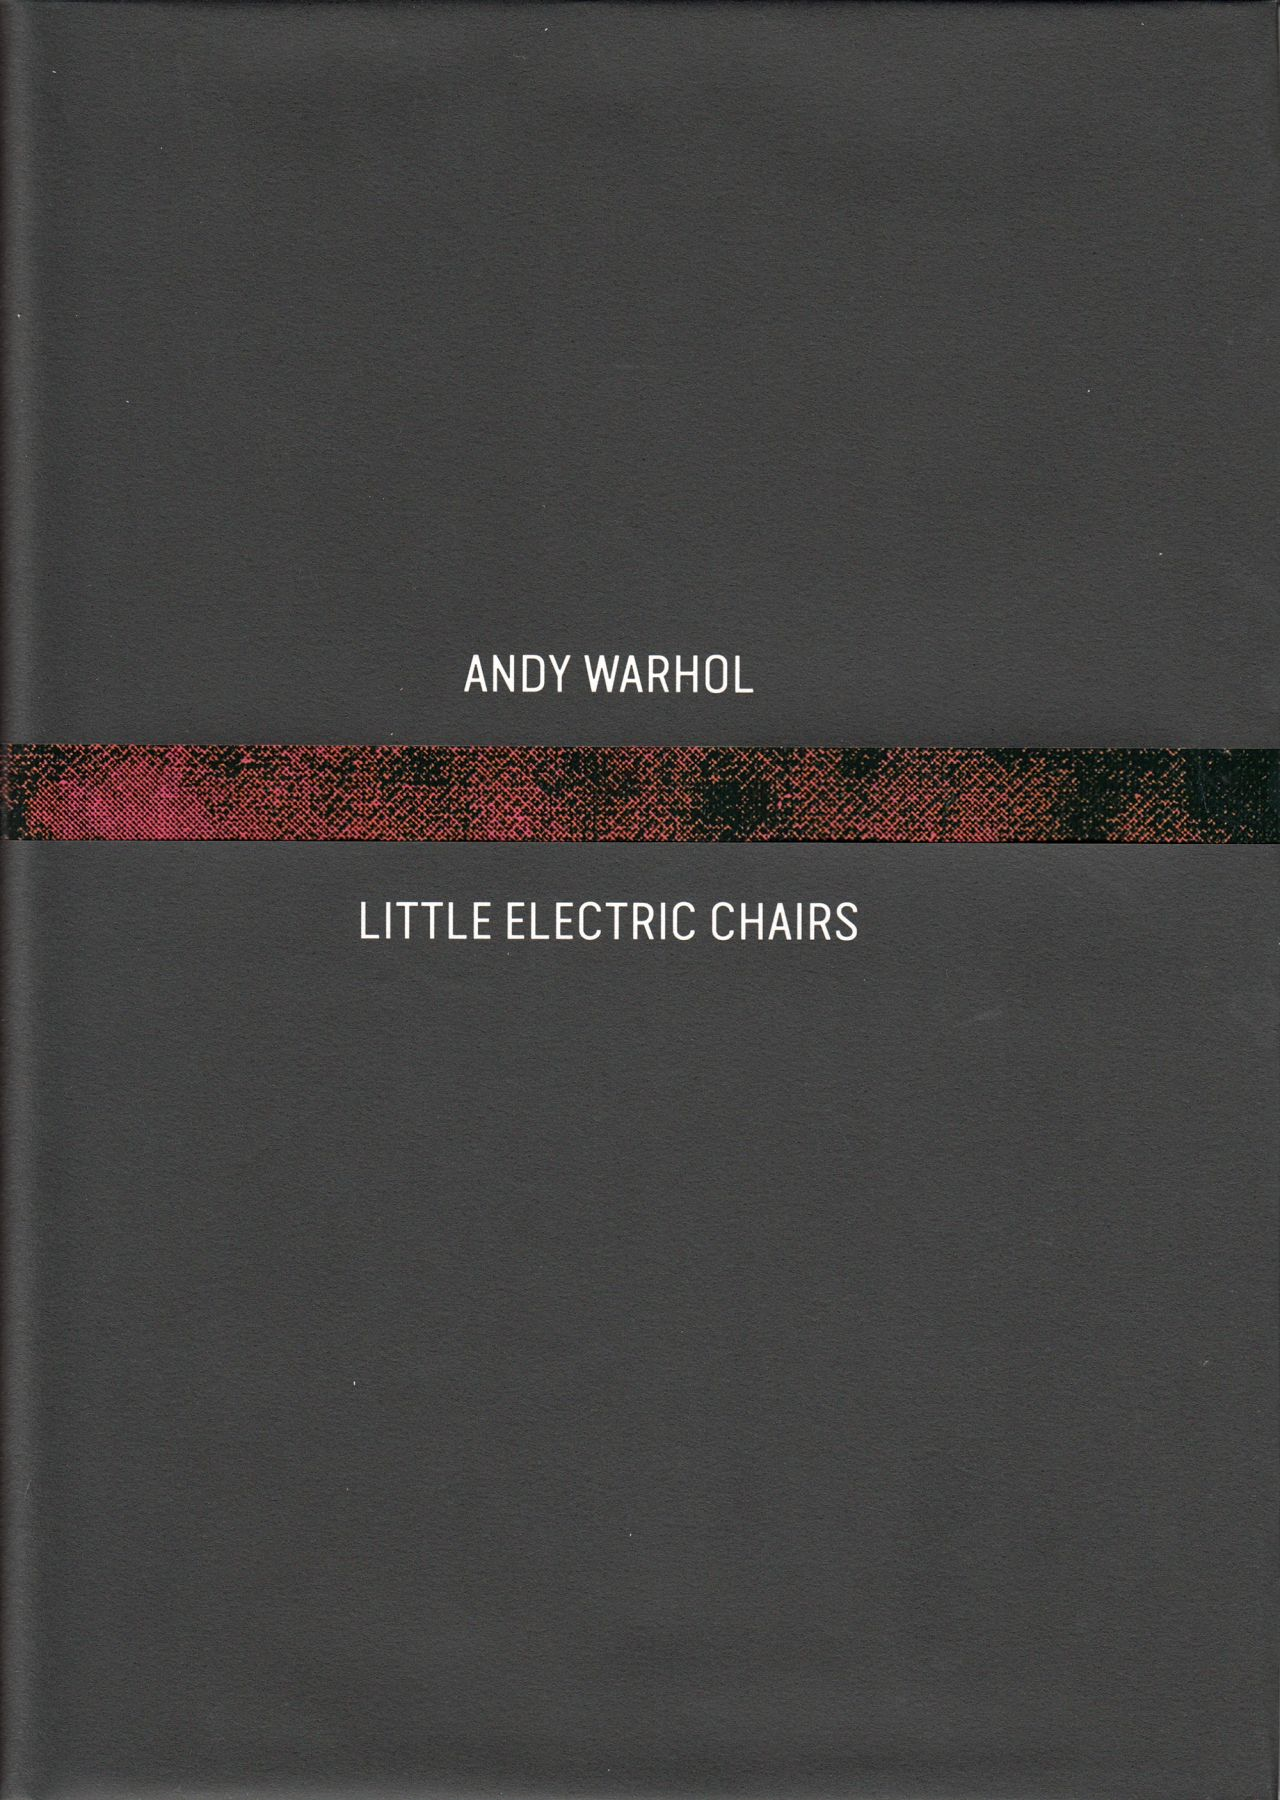 Cover of Andy Warhol: Little Electric Chairs, published by Venus Over Manhattan, New York, 2016